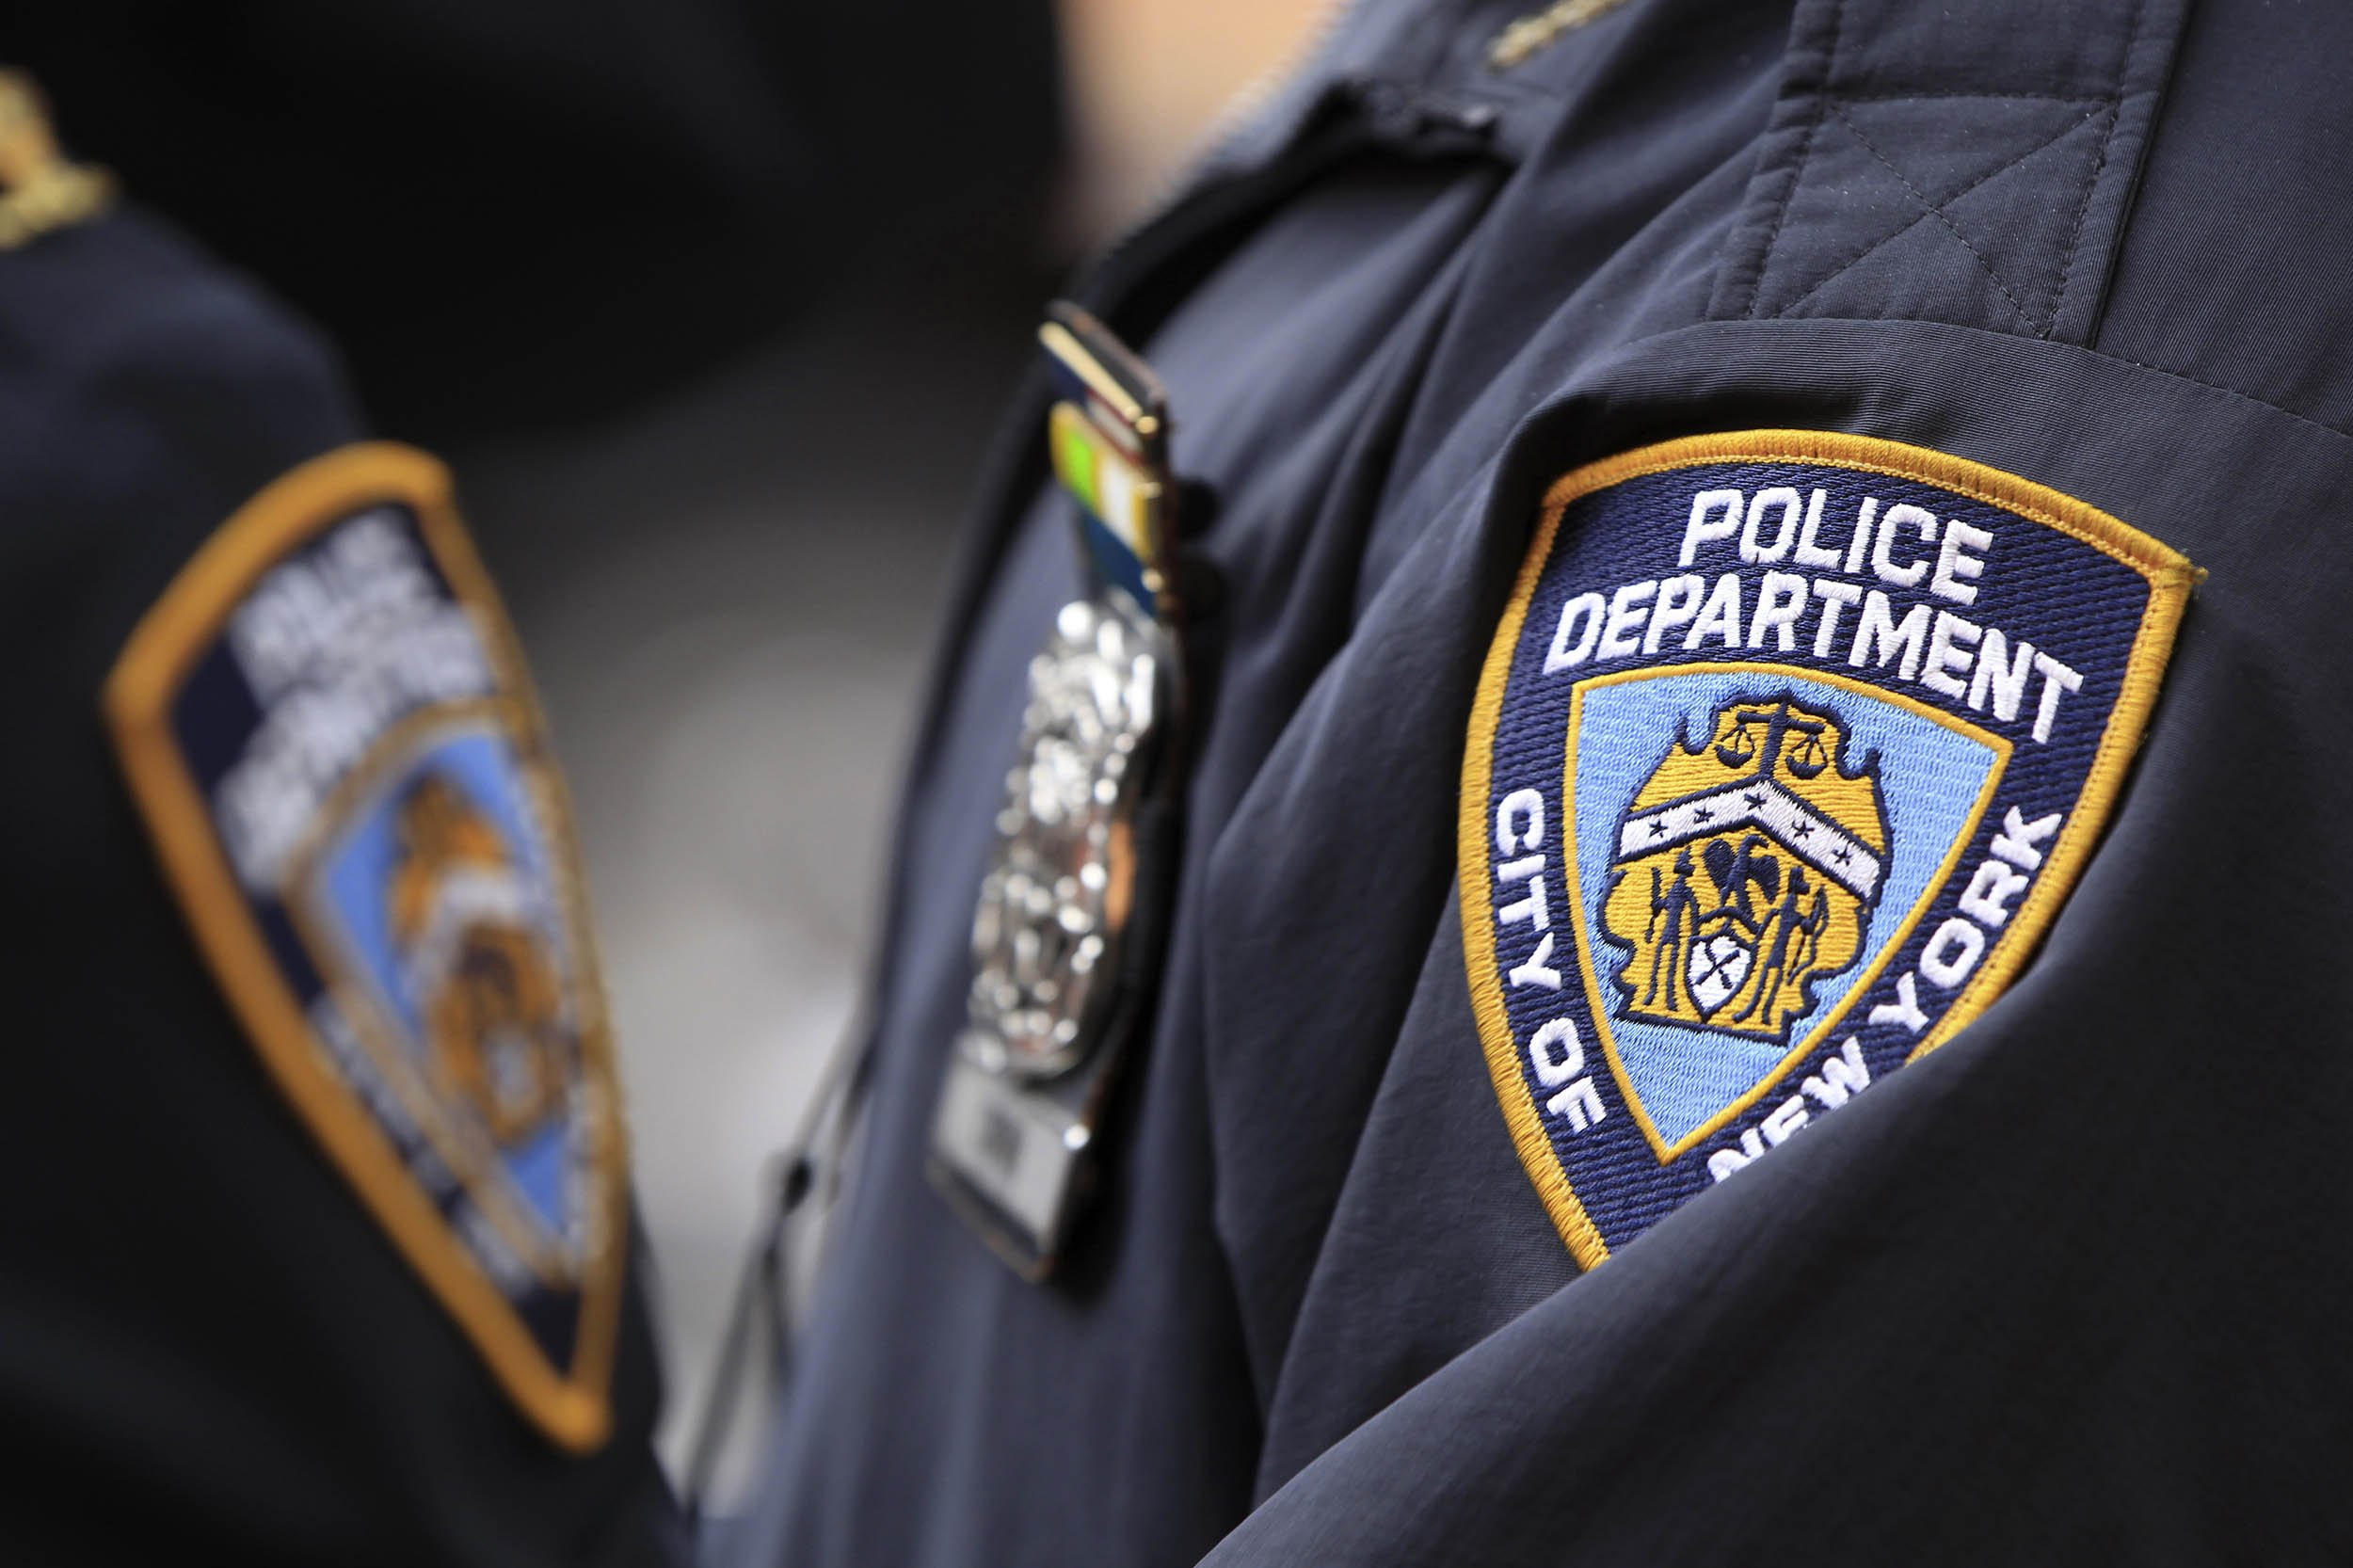 08_04_NYPD_01